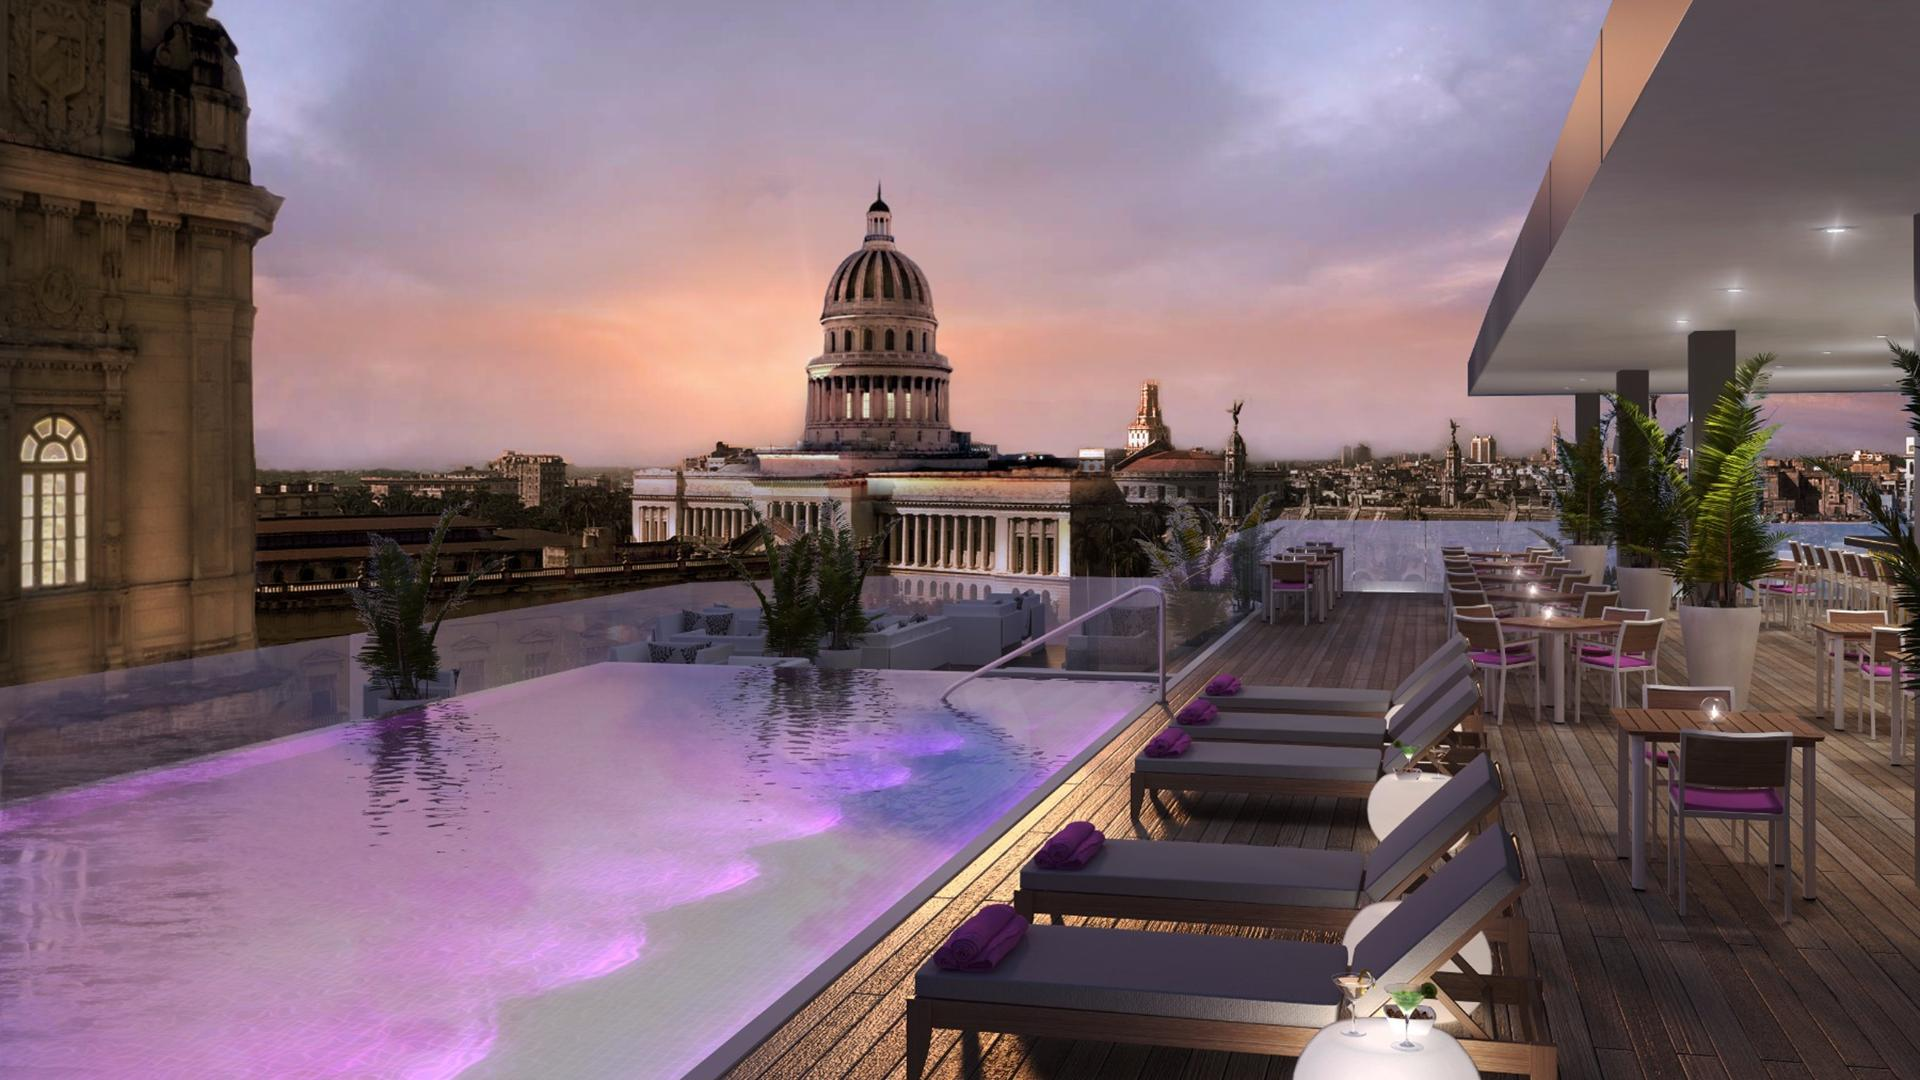 The pool overlooks The Capitol. Image by Kempinski Hotels